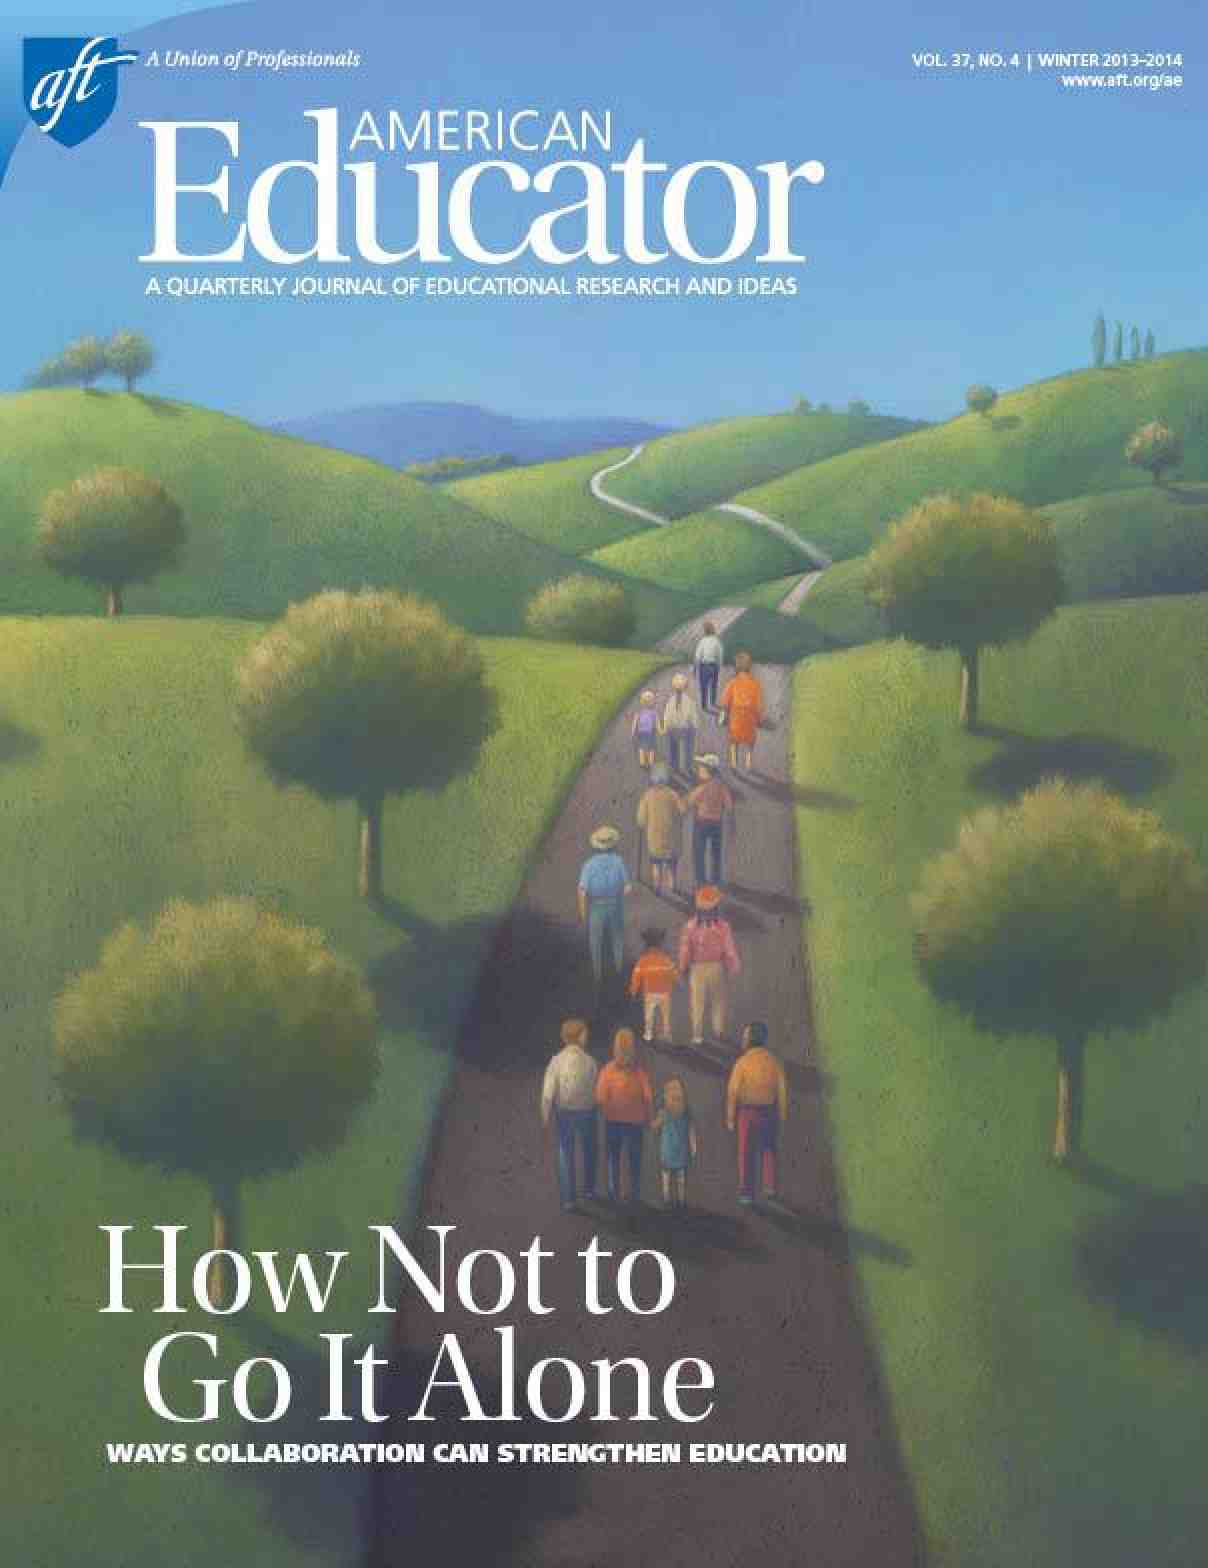 American Educator, Winter 2013-2014